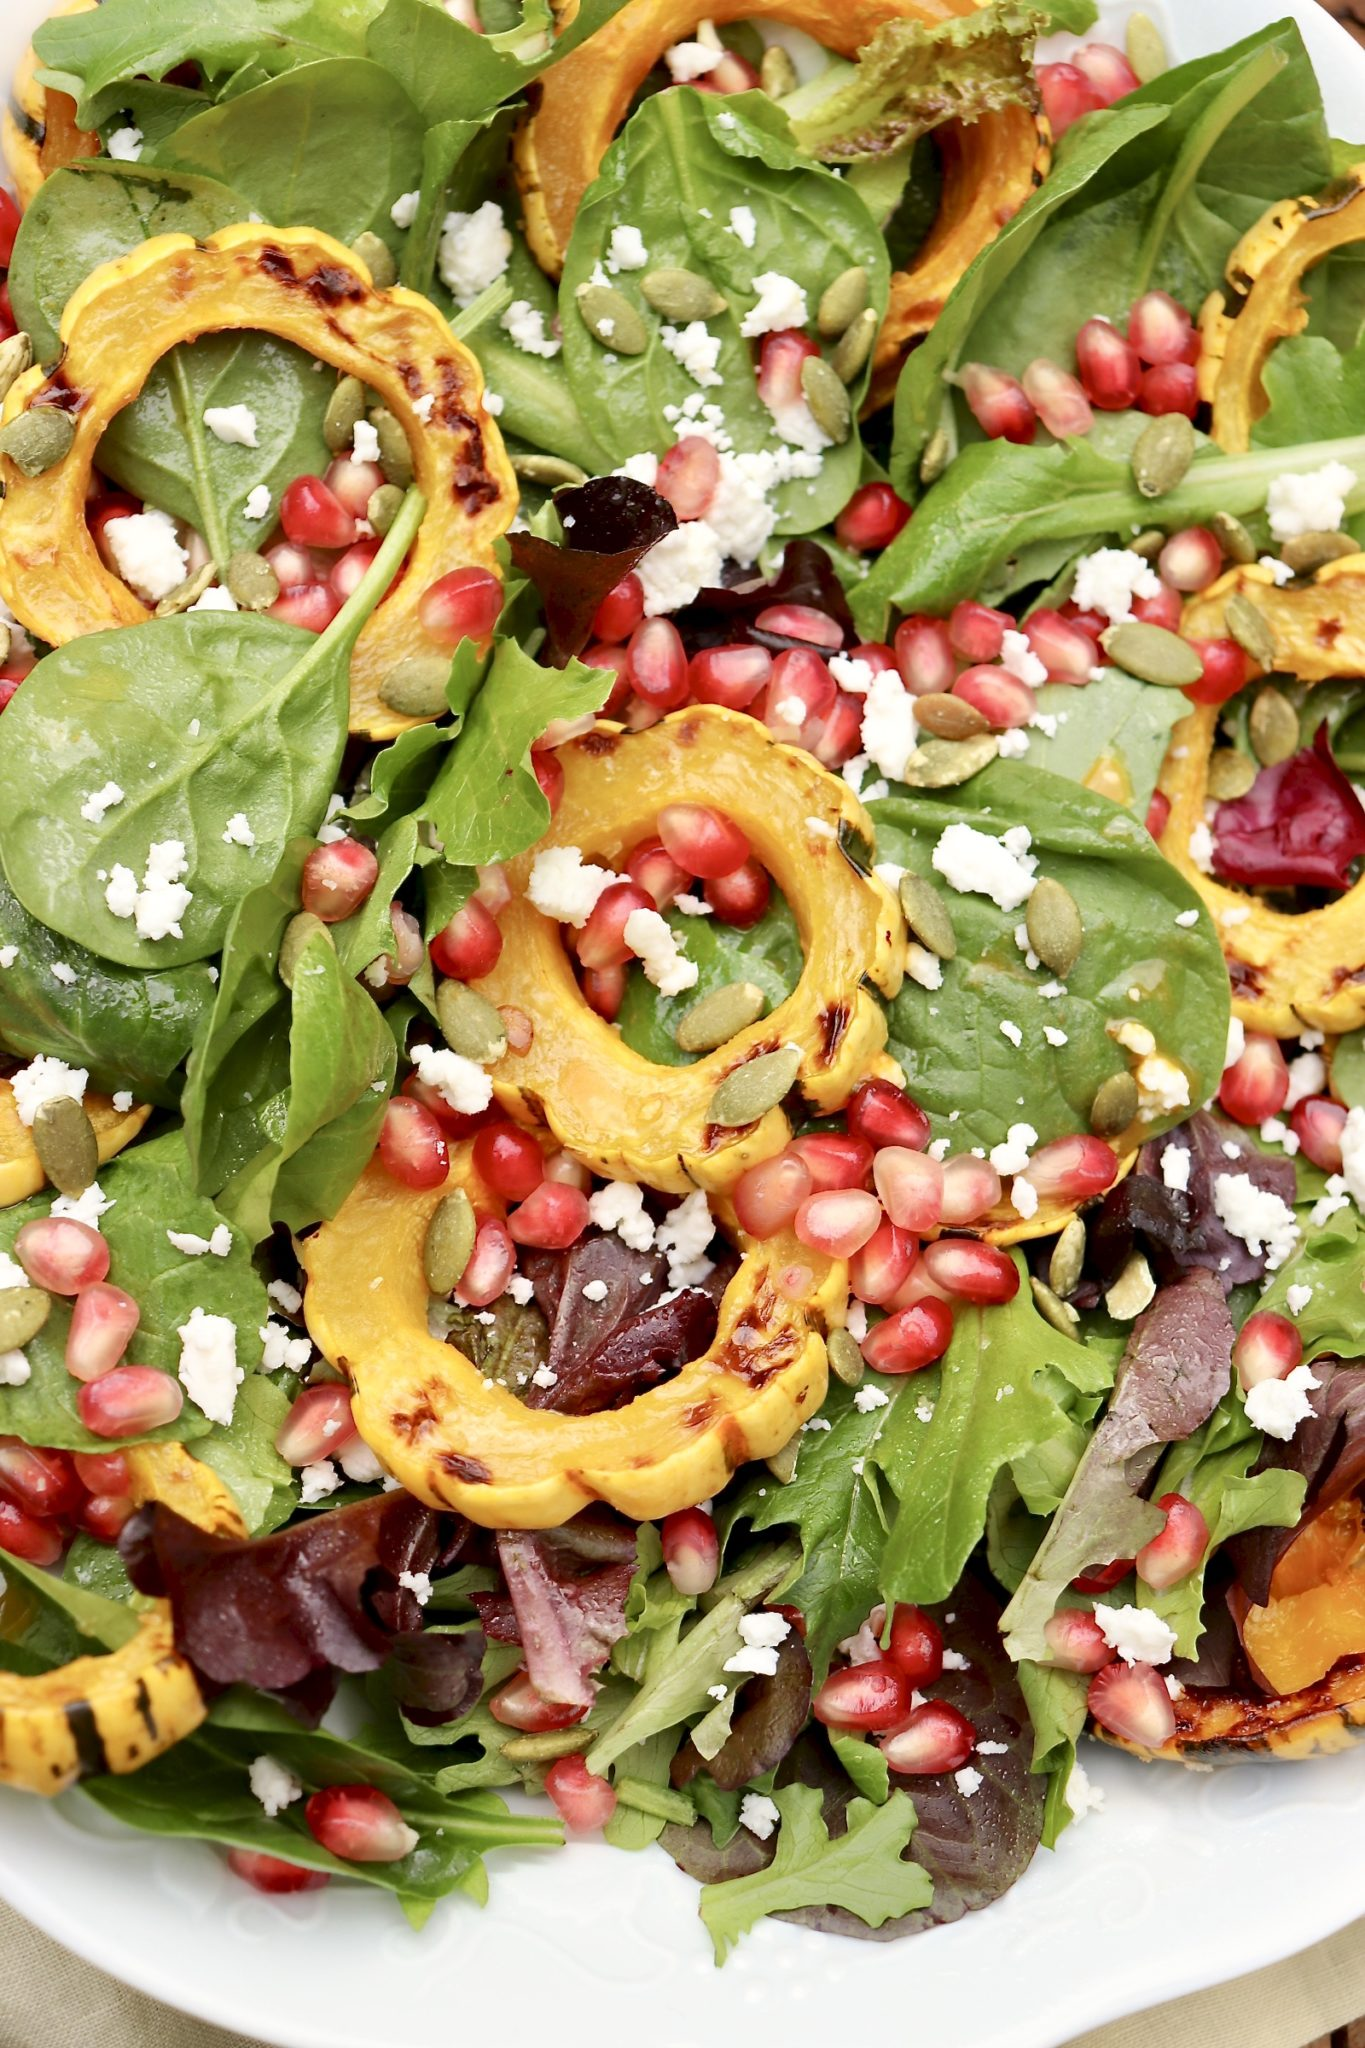 Radiant jewel tones make this Roasted Delicata Squash & Pomegranate Salad as stunning as it is healthy. It offers an eye catching and refreshingly light element on a holiday table and can be paired with a protein of choice for a well rounded meal any night. Feel free to swap in another winter squash of choice or use dried cranberries in place of pomegranate!